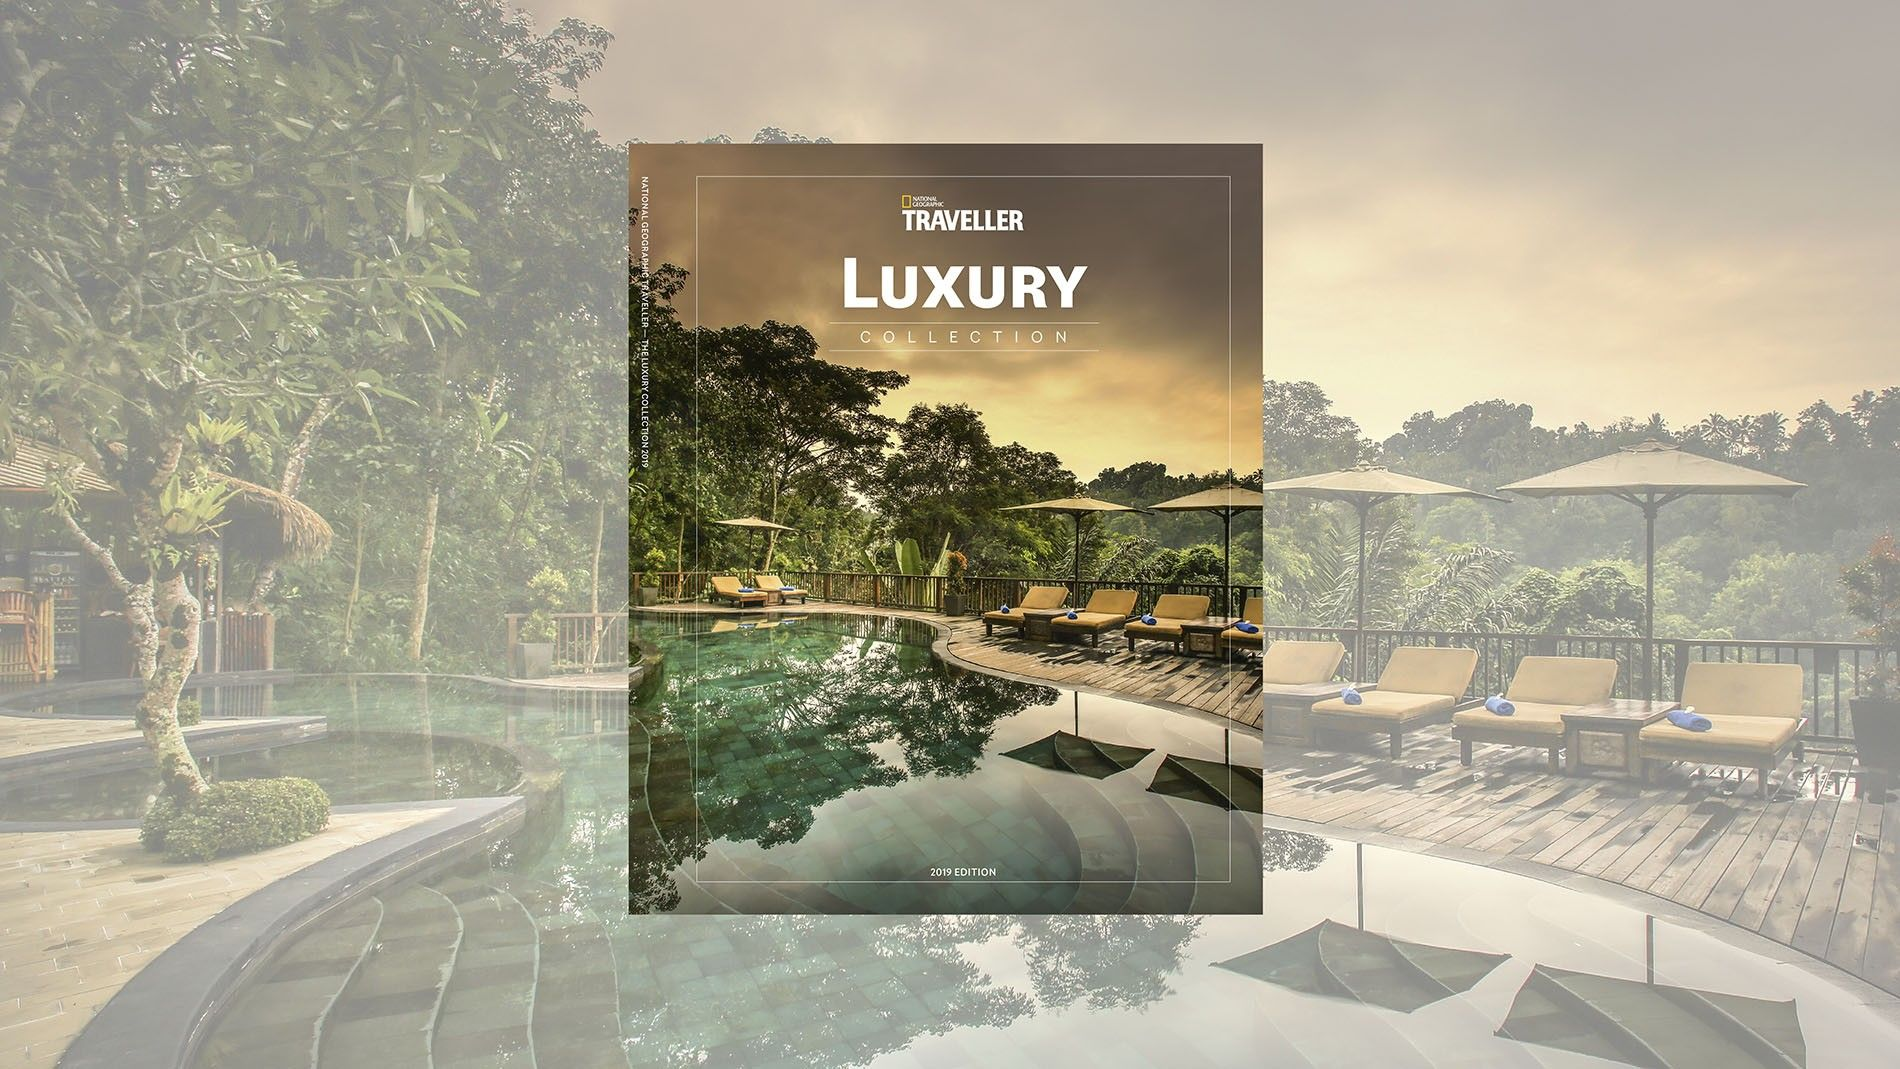 The Luxury Collection 2019